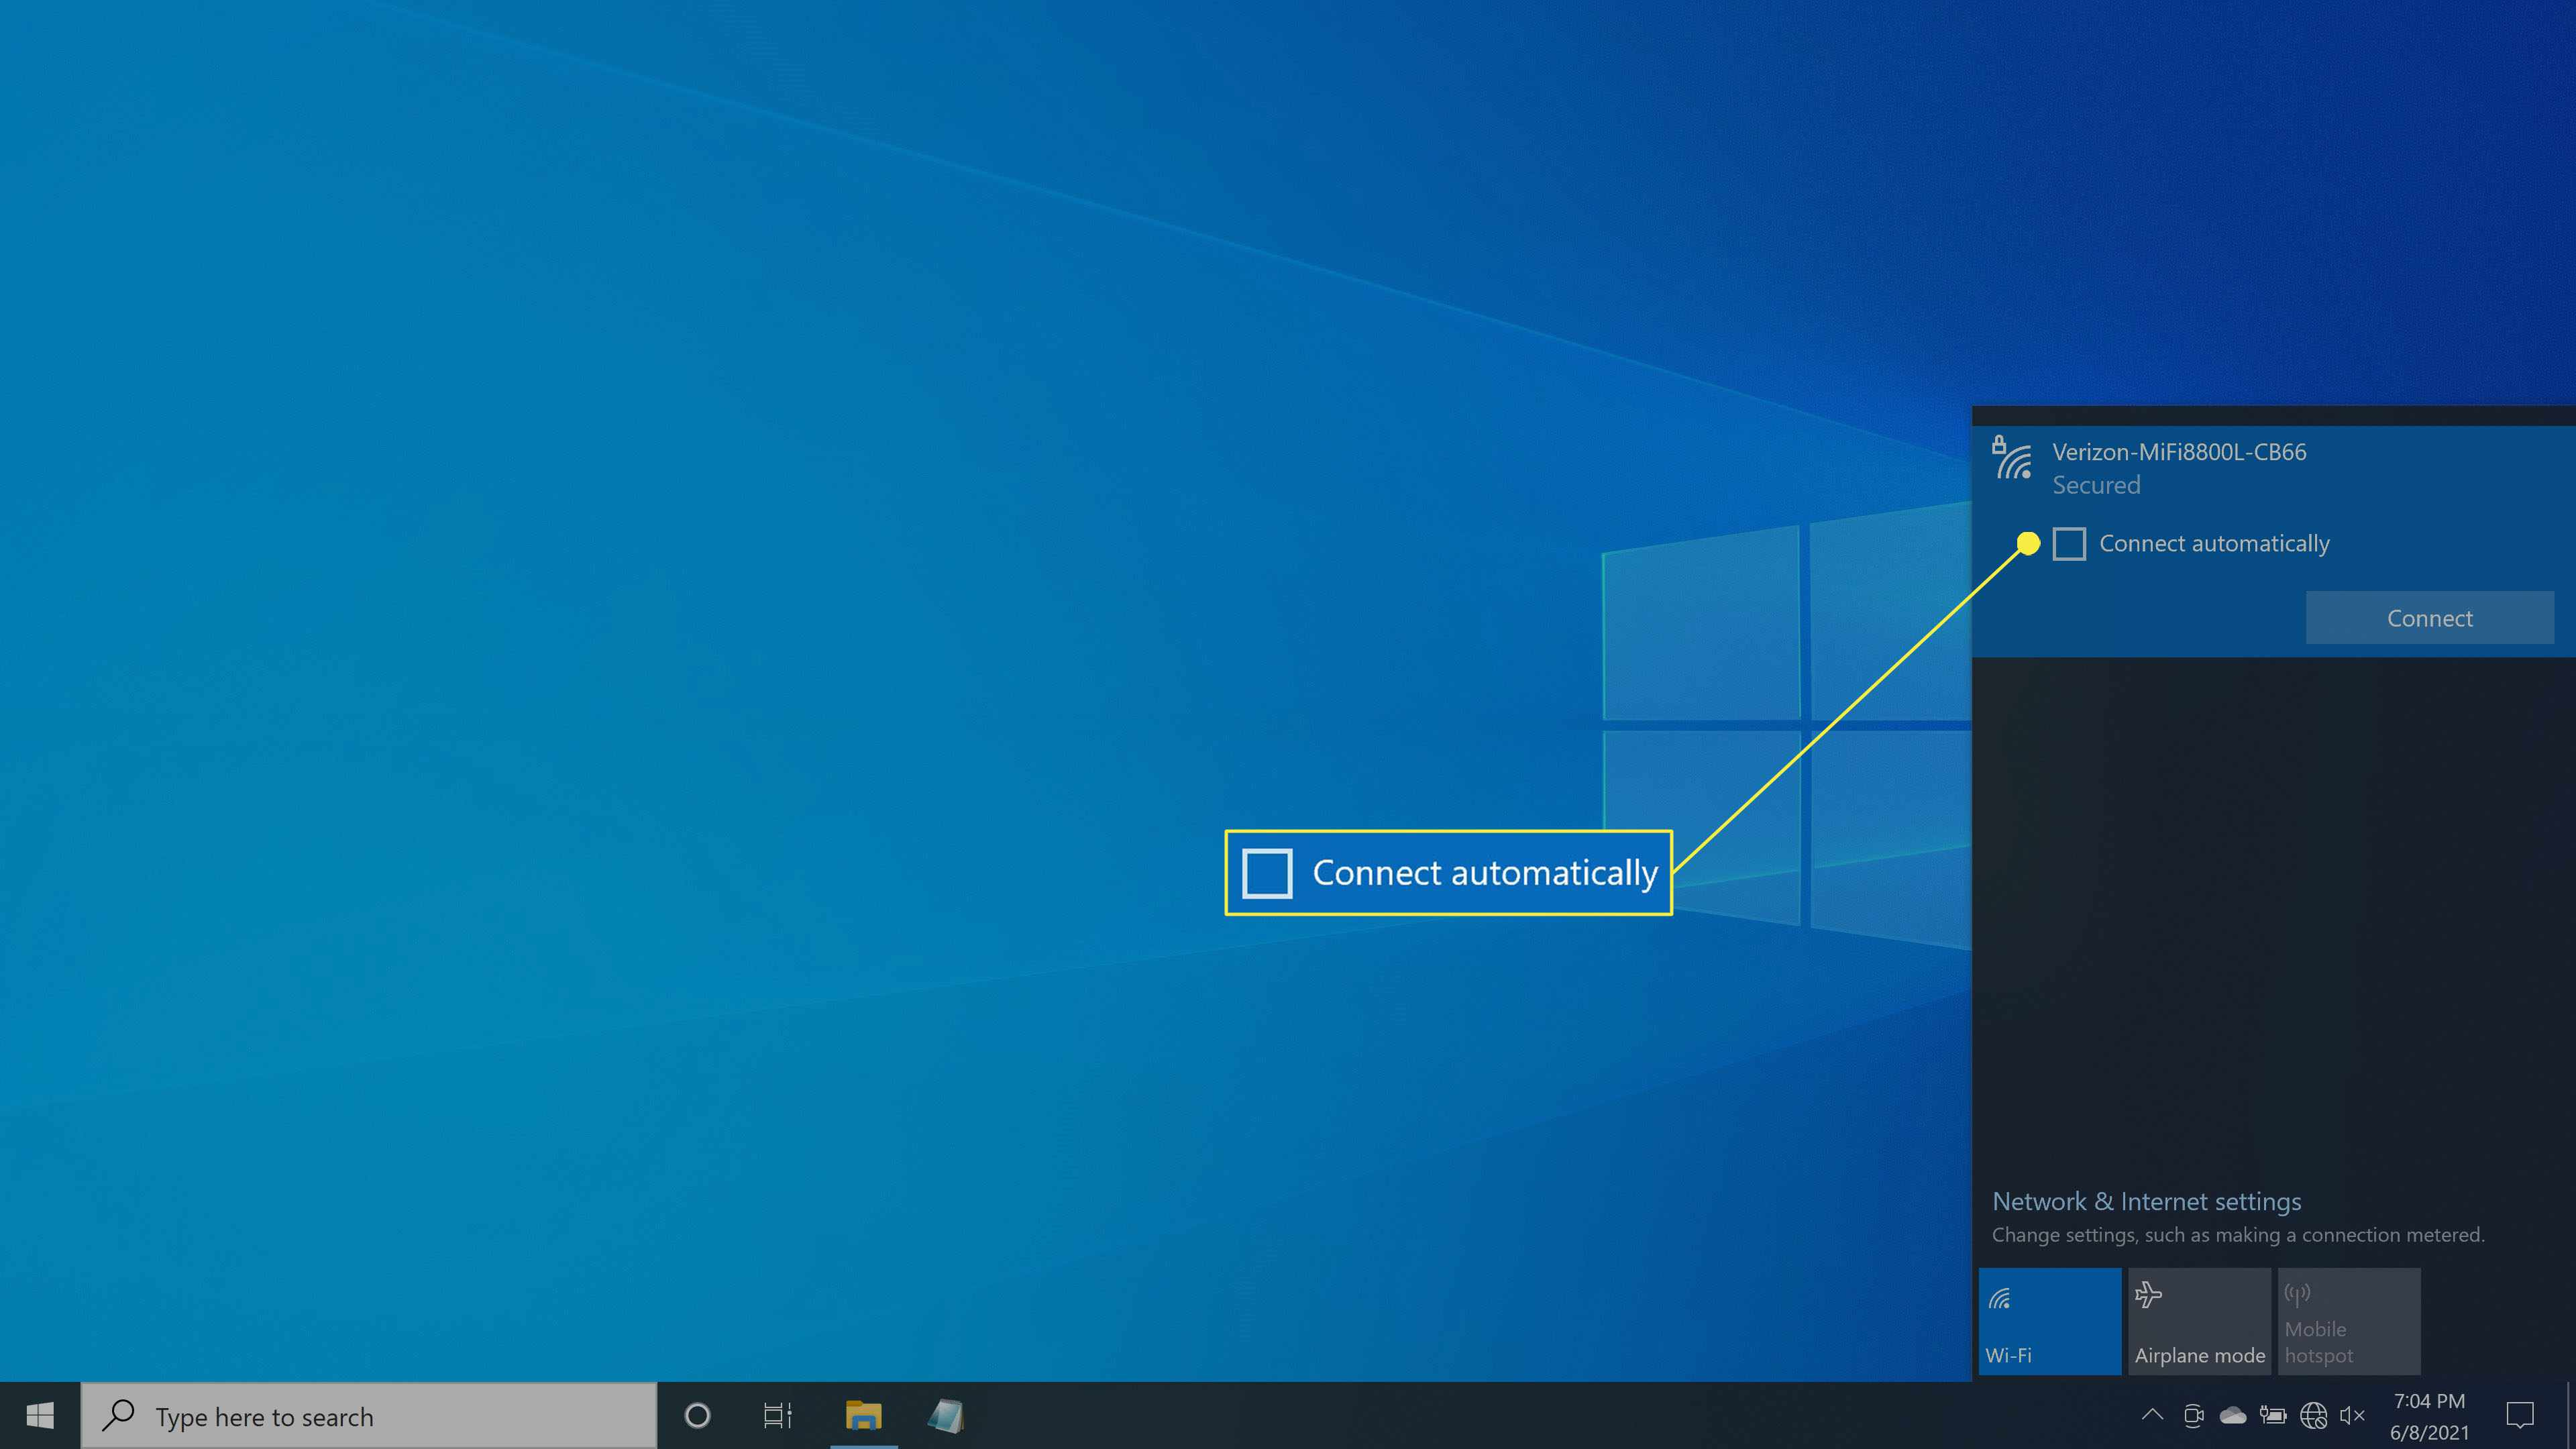 The option to connect automatically to a wireless network in Windows 10.